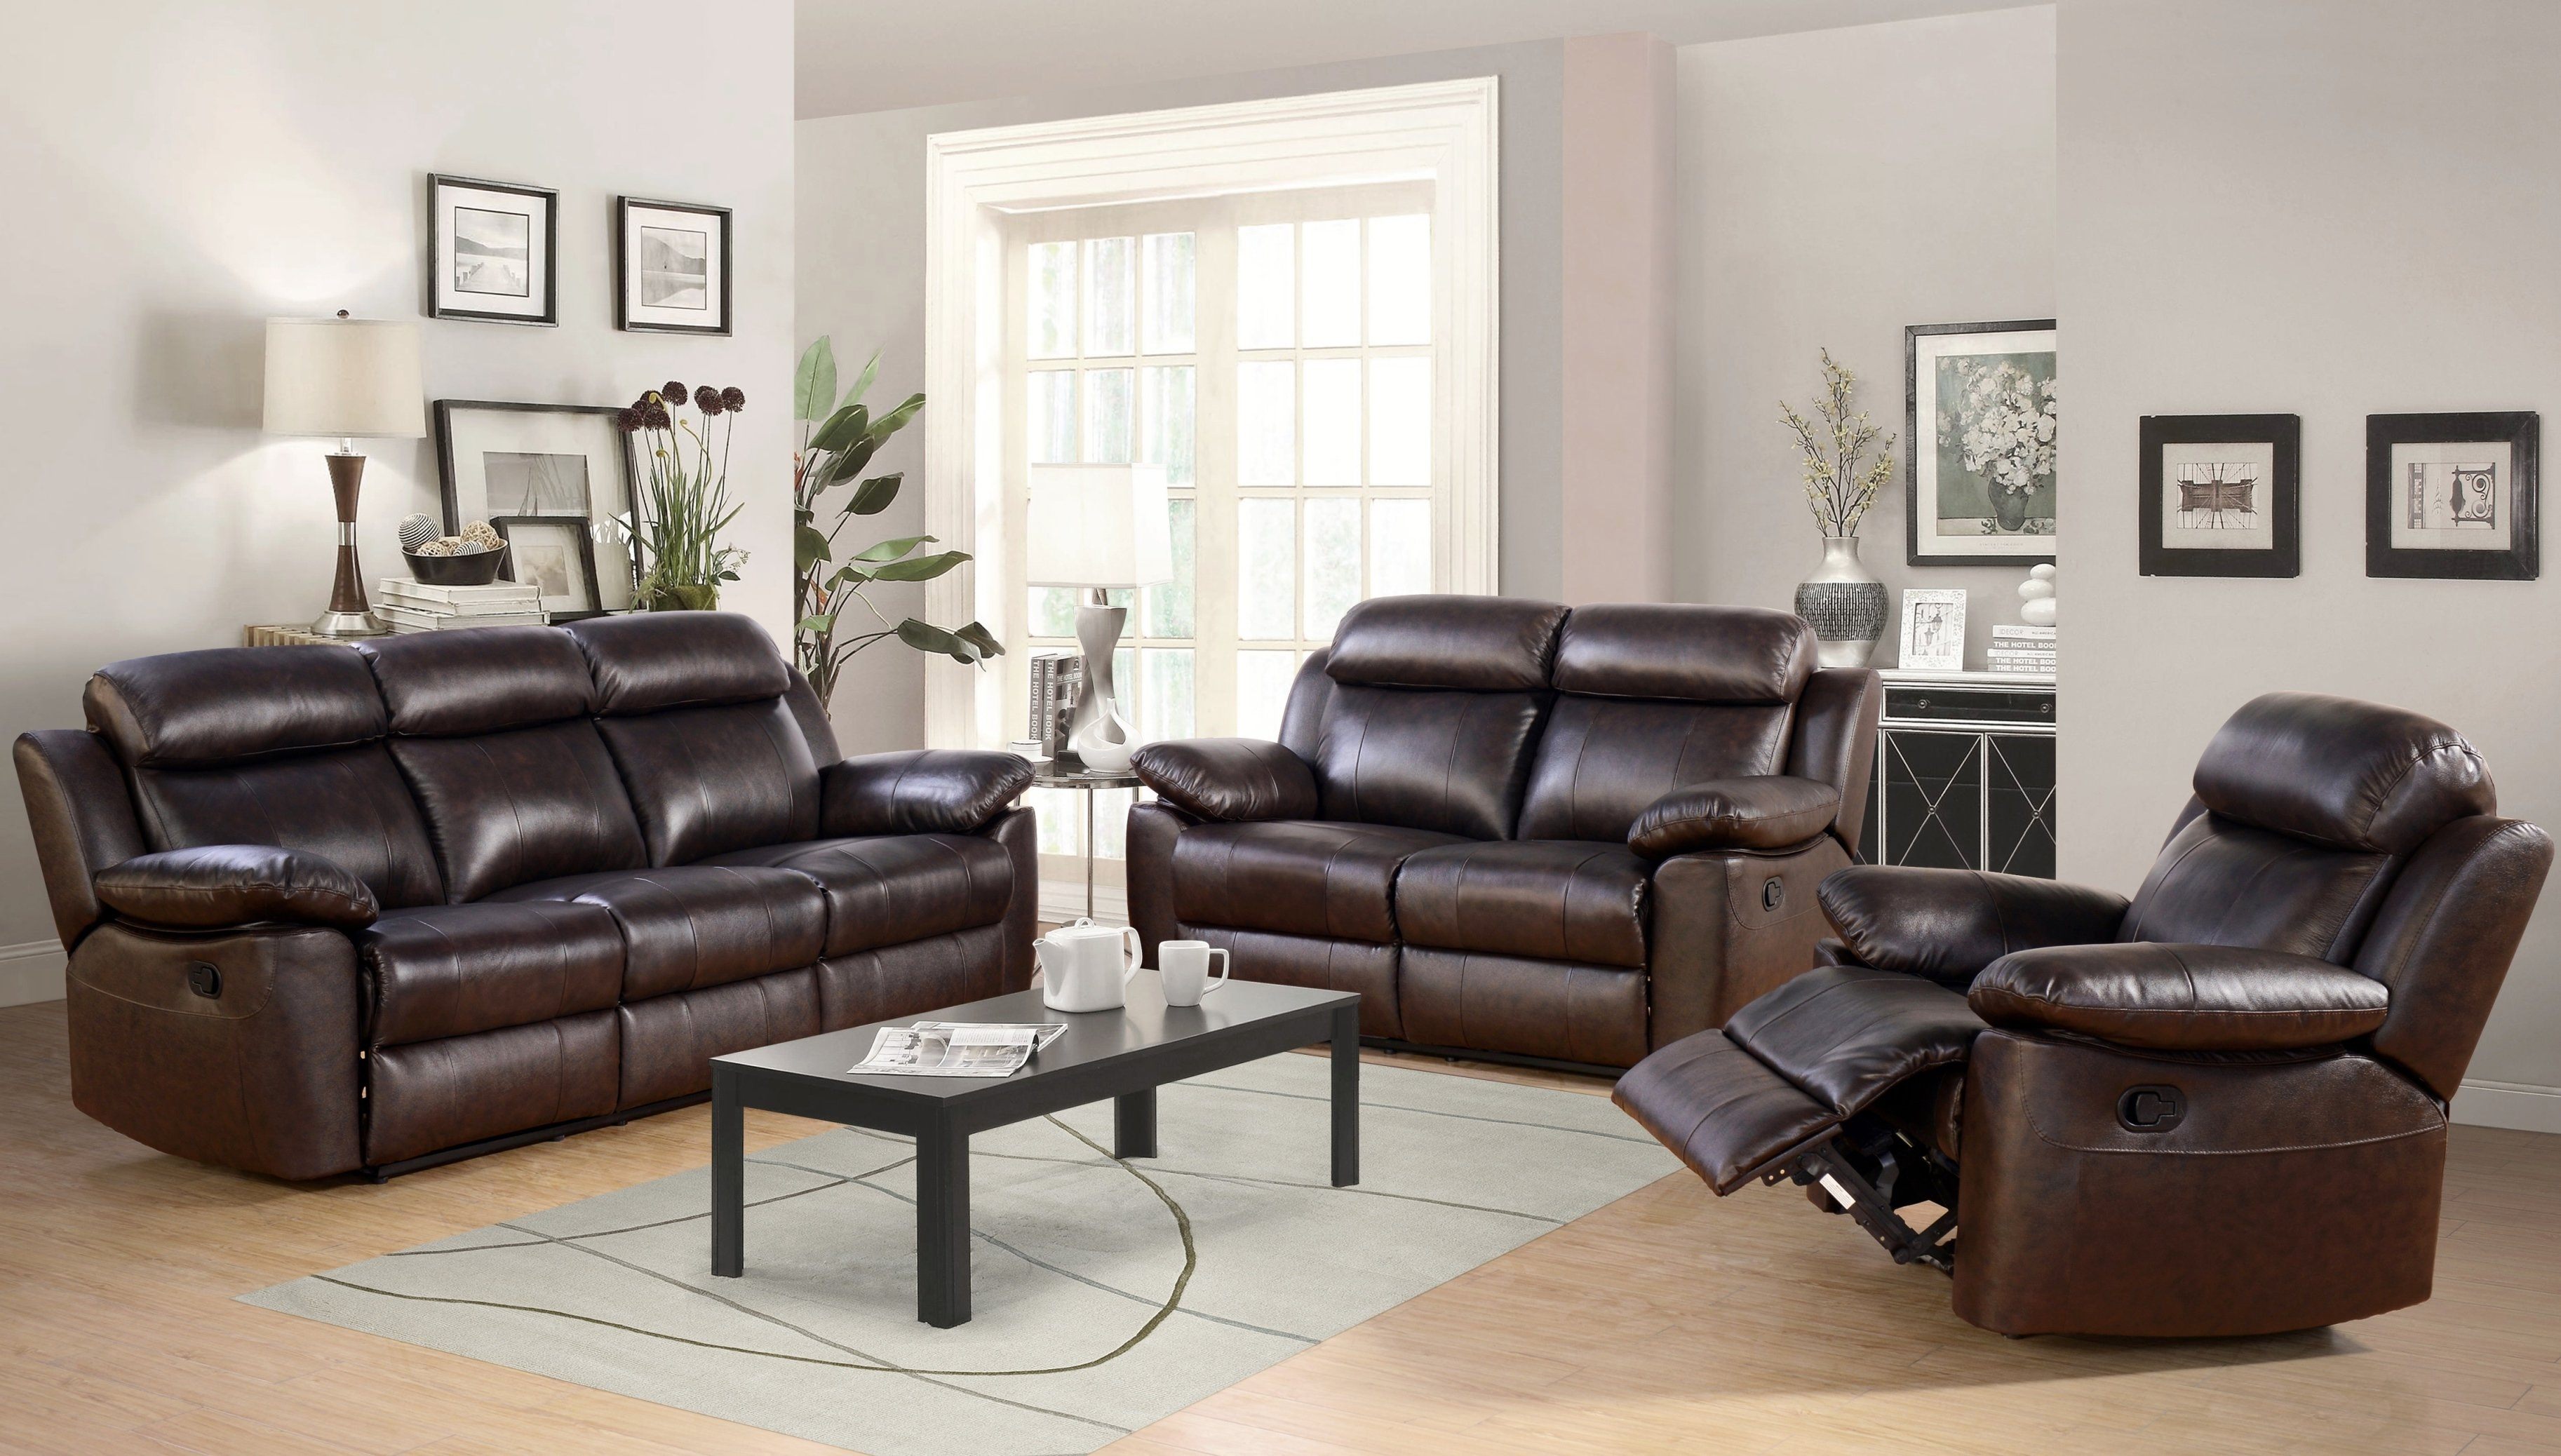 Breakwater Bay Oliver Reclining Leather 3 Piece Living Room Set within 11 Genius Tricks of How to Build 3 Piece Leather Living Room Set